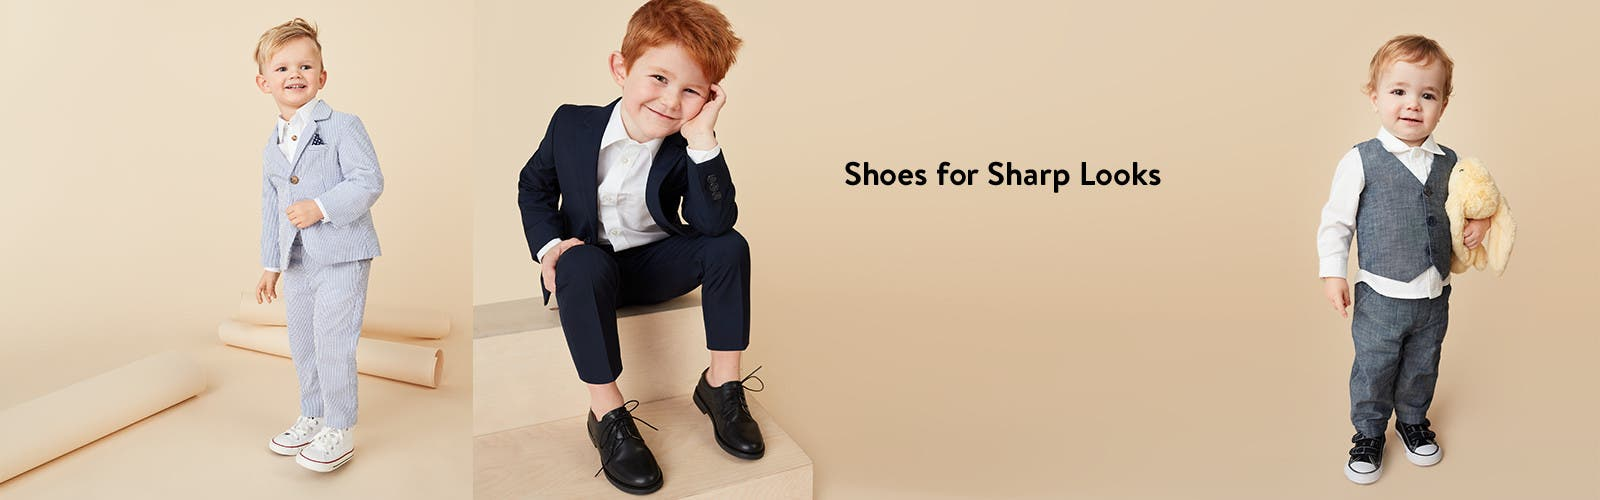 Shoes for sharp looks.